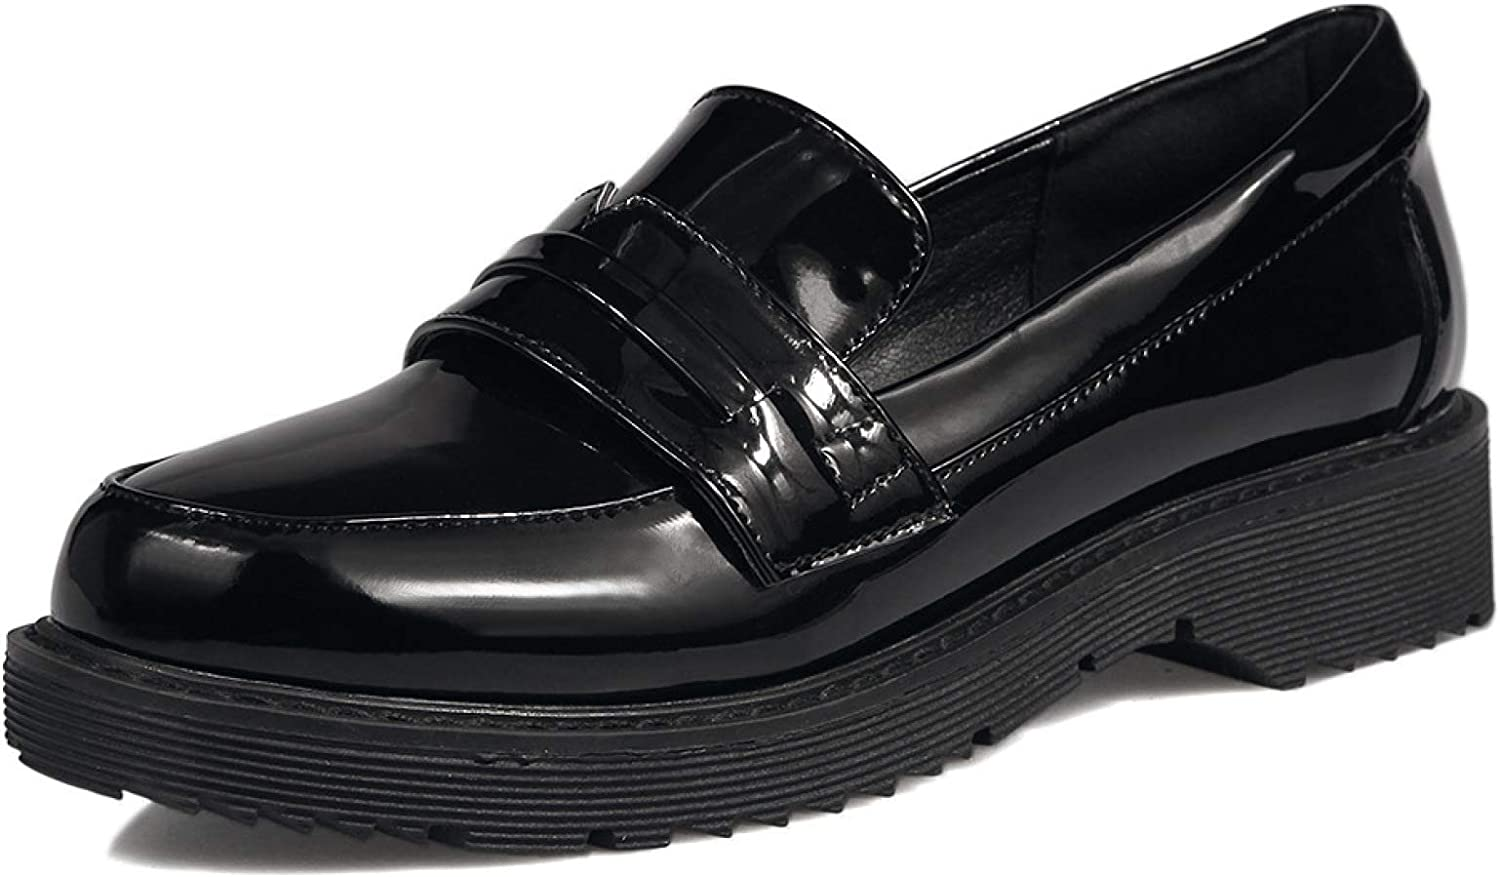 Women's Penny Loafers Leather Low Heel Casual Office Work School Pump Classic Slip On Platform Dress Shoes